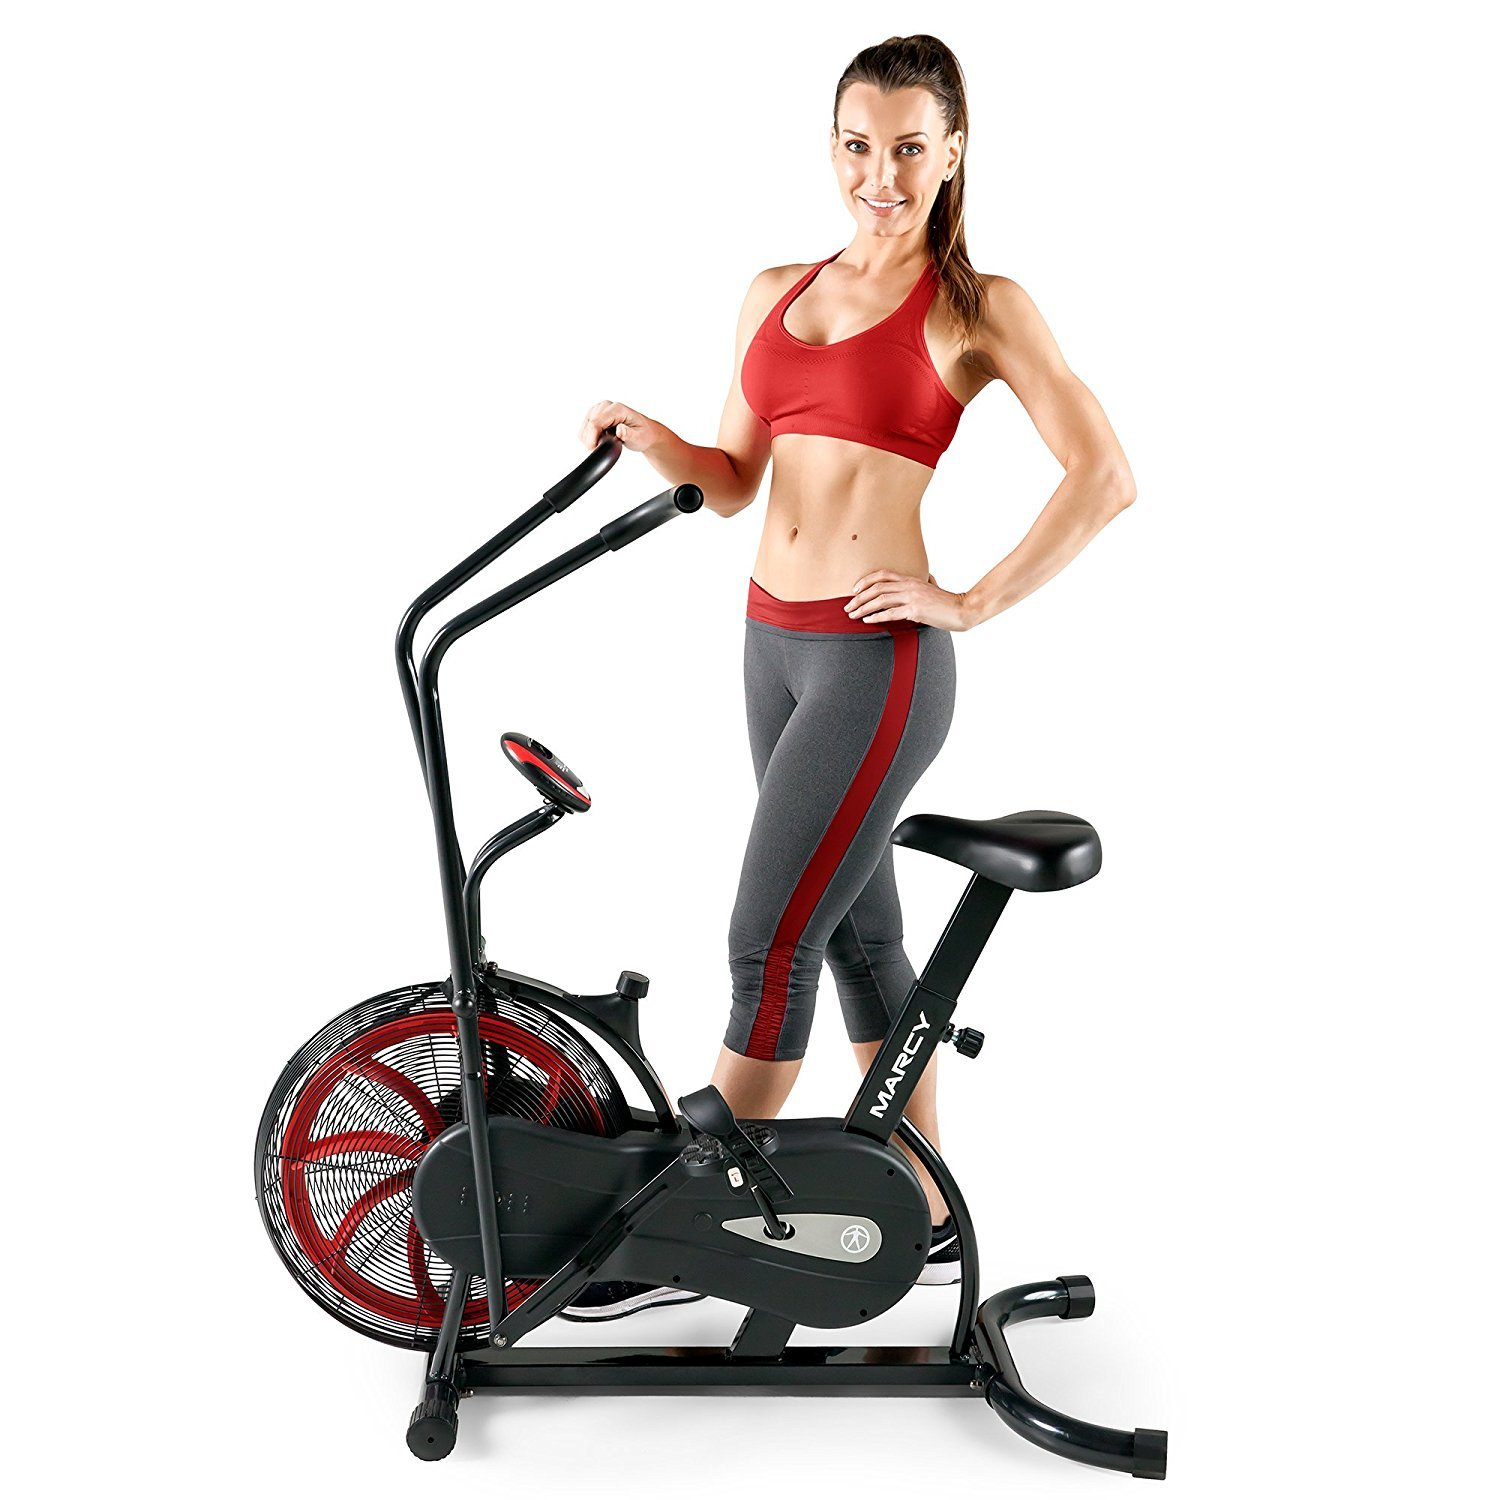 Marcy Fan Exercise Bike with Air Resistance System - Red and Black - NS-1000